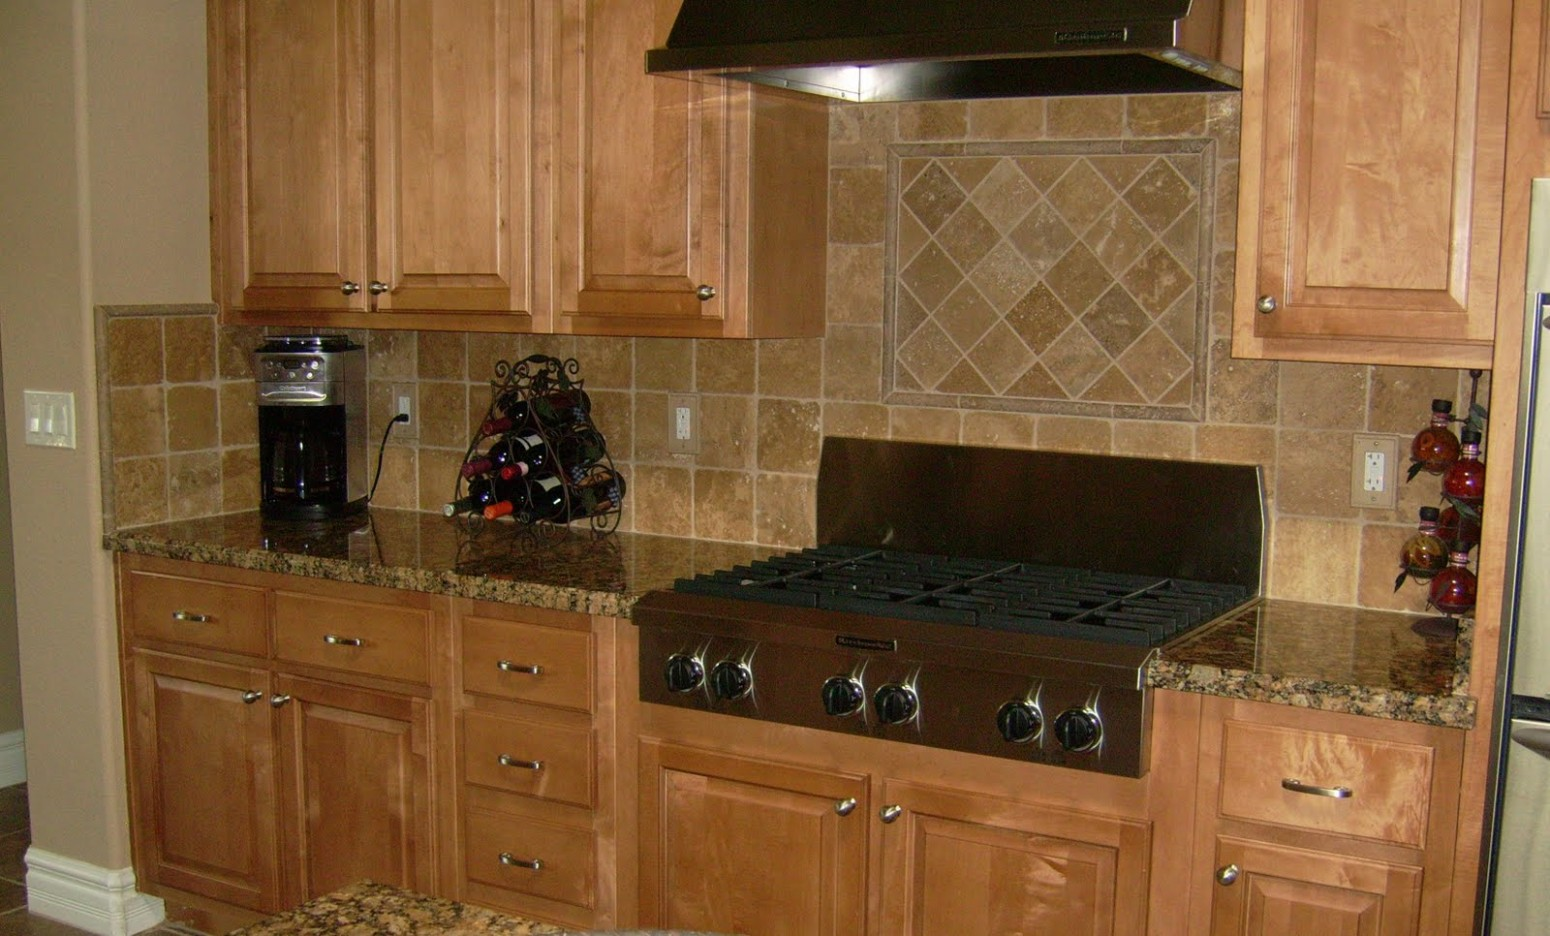 Home Depot Kitchen Backsplash Design loopelecom 1550x936